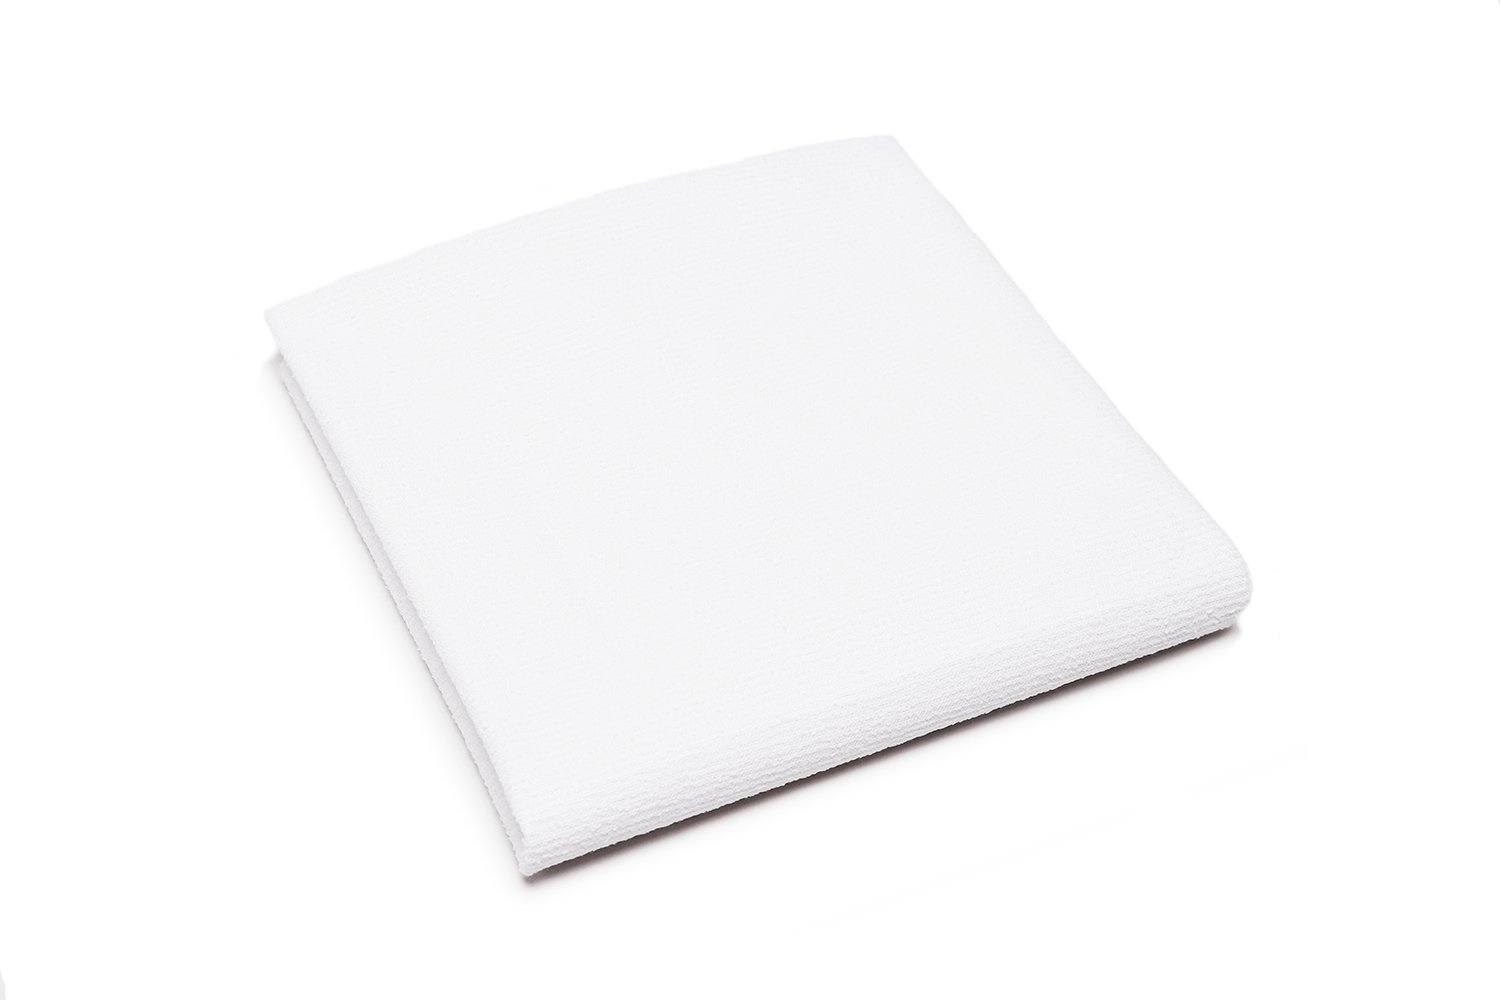 Waterproof Fitted Terry Cotton Mattress Protector Topper Cot Bed 60cm x 120cm